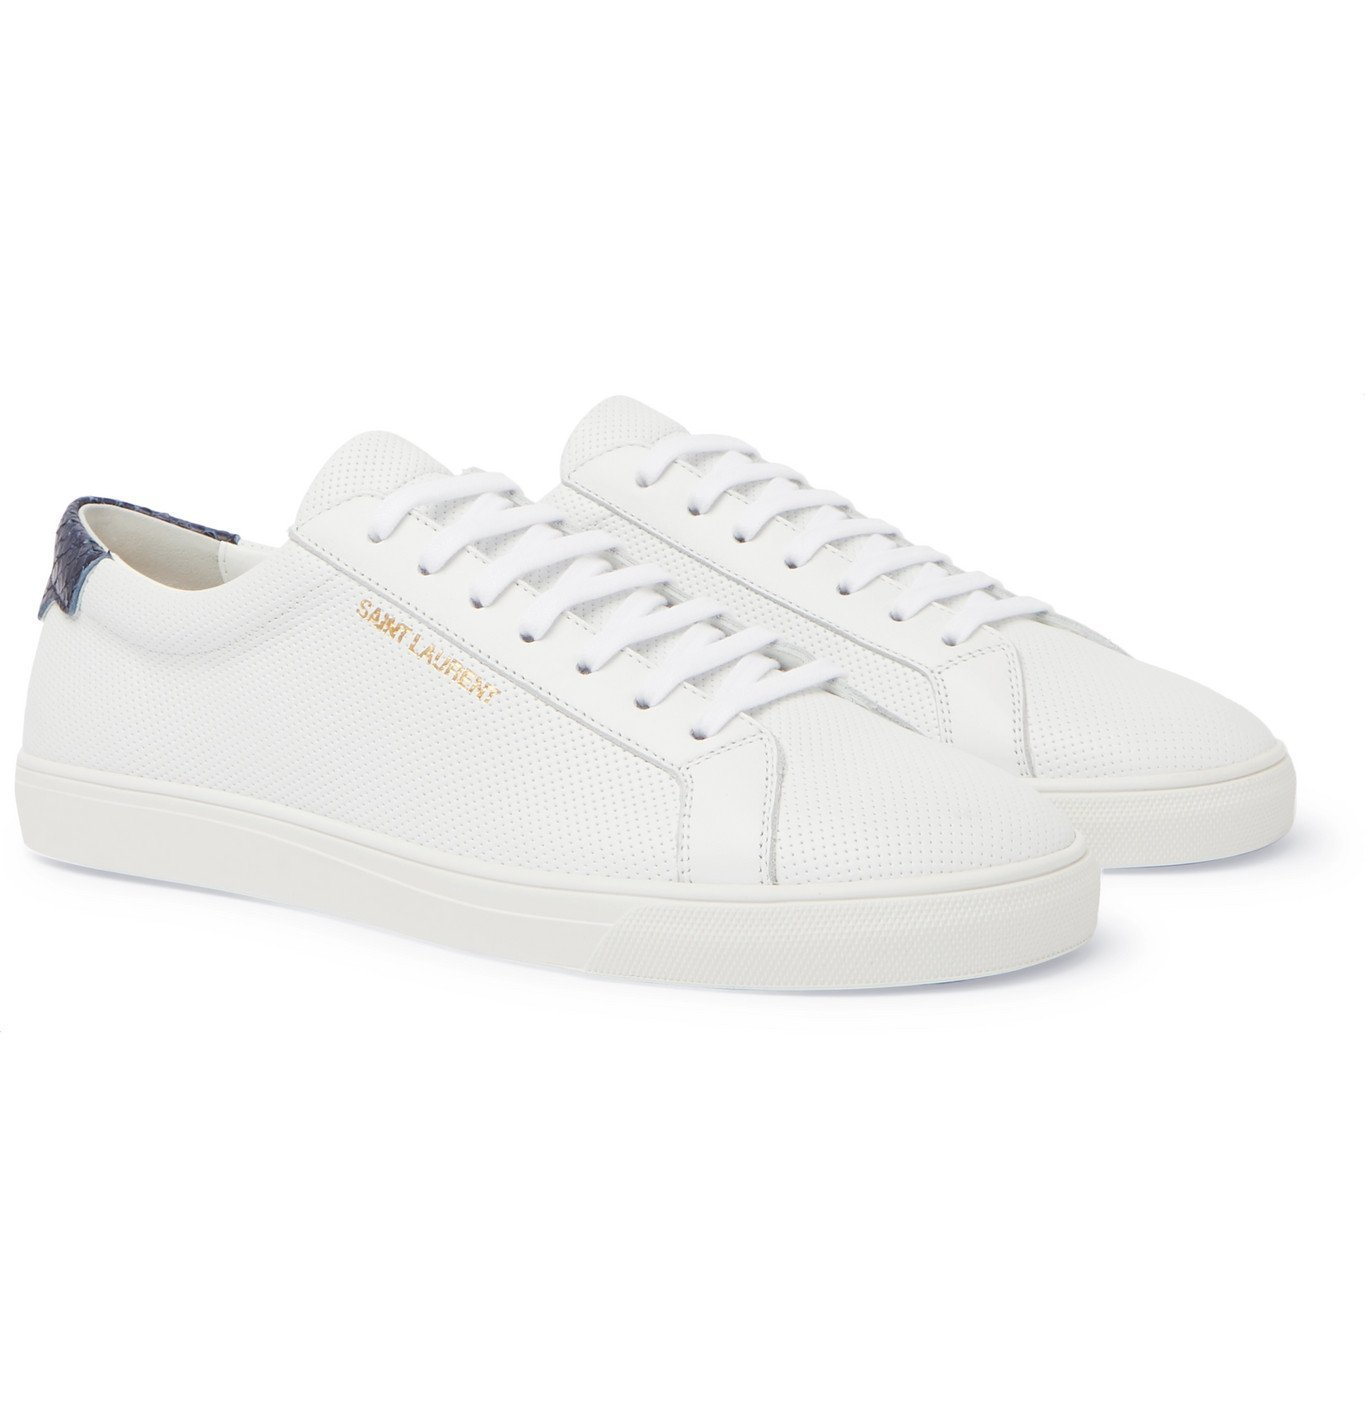 Photo: SAINT LAURENT - Andy Snake Effect-Trimmed Perforated Leather Sneakers - White